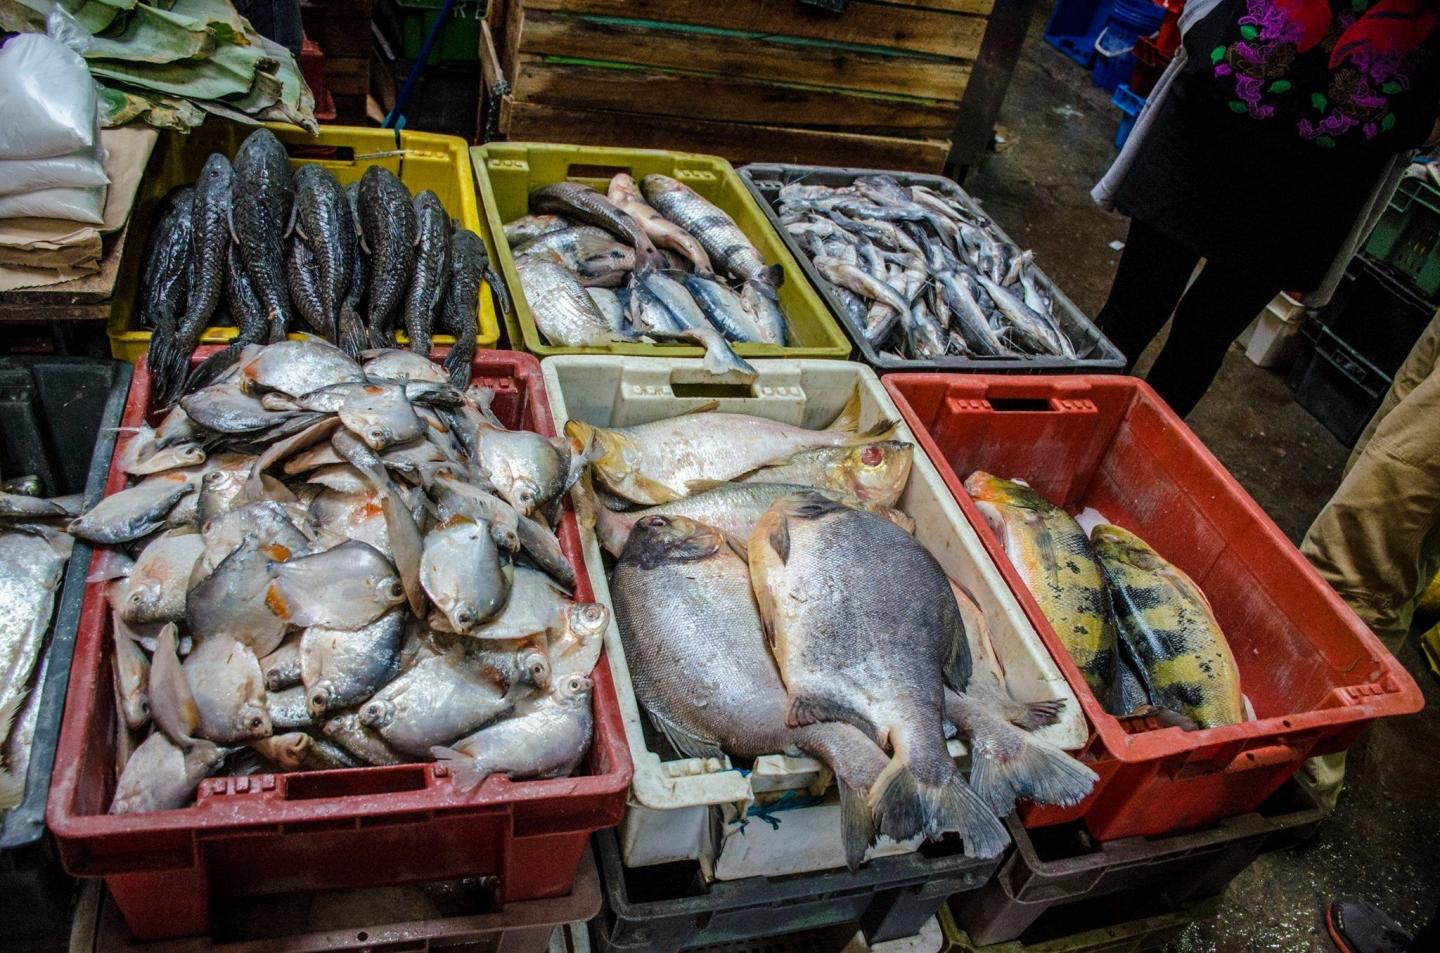 Aquatic biodiversity key to sustainable, nutrient-rich diets